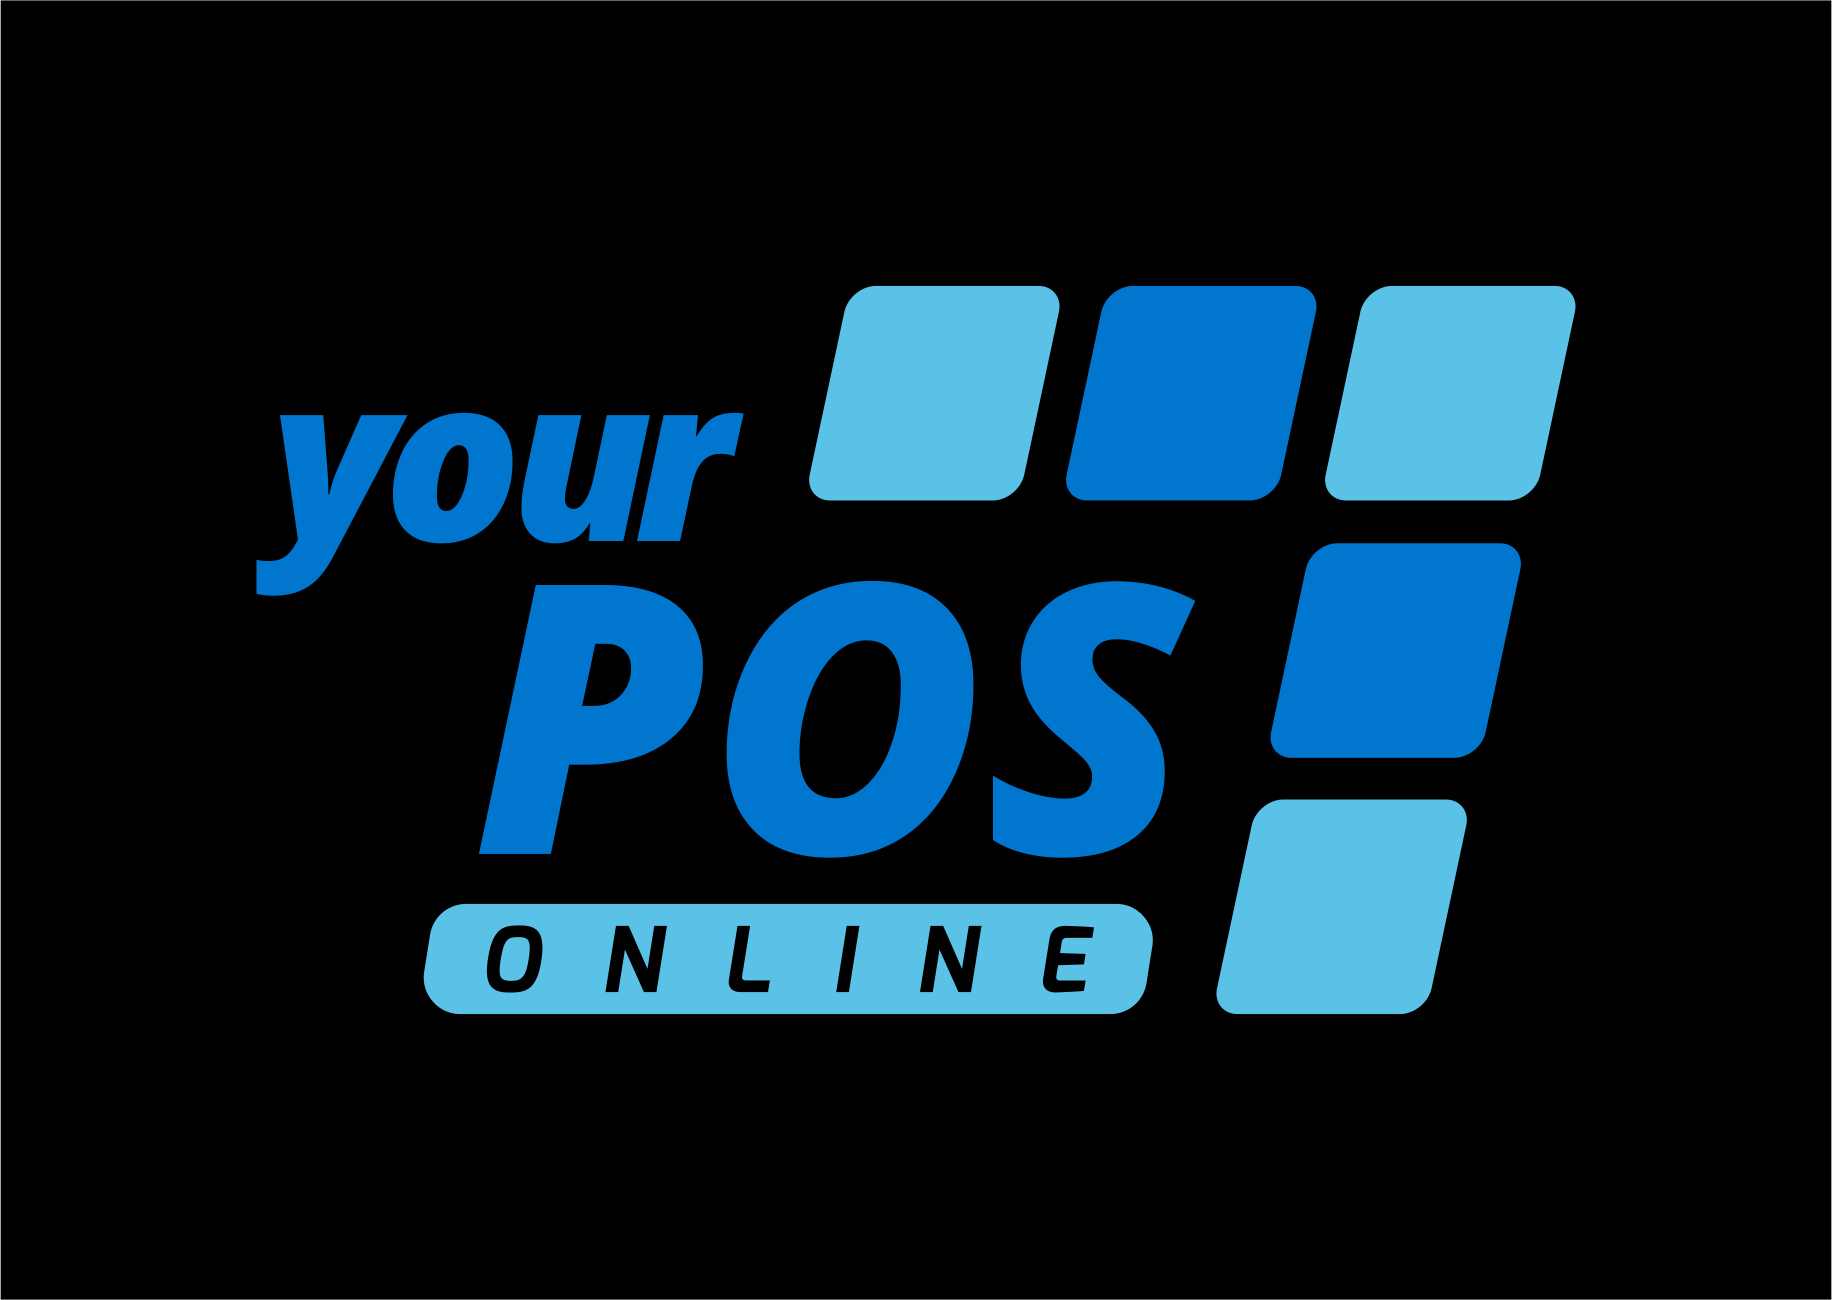 Your POS Online